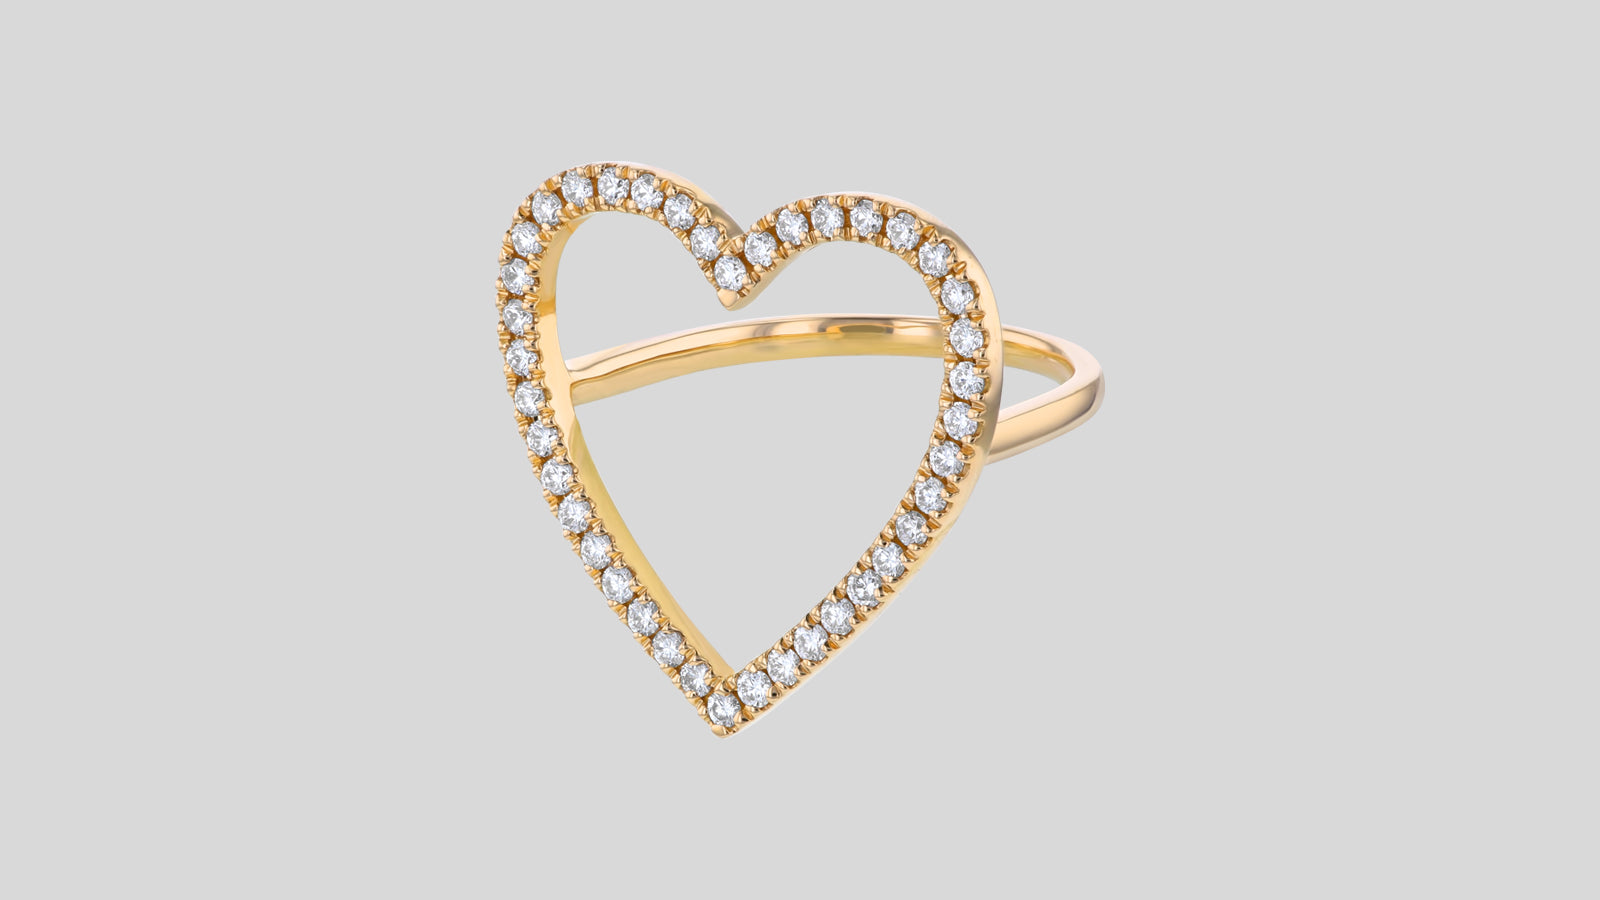 The Open Heart Diamond Ring